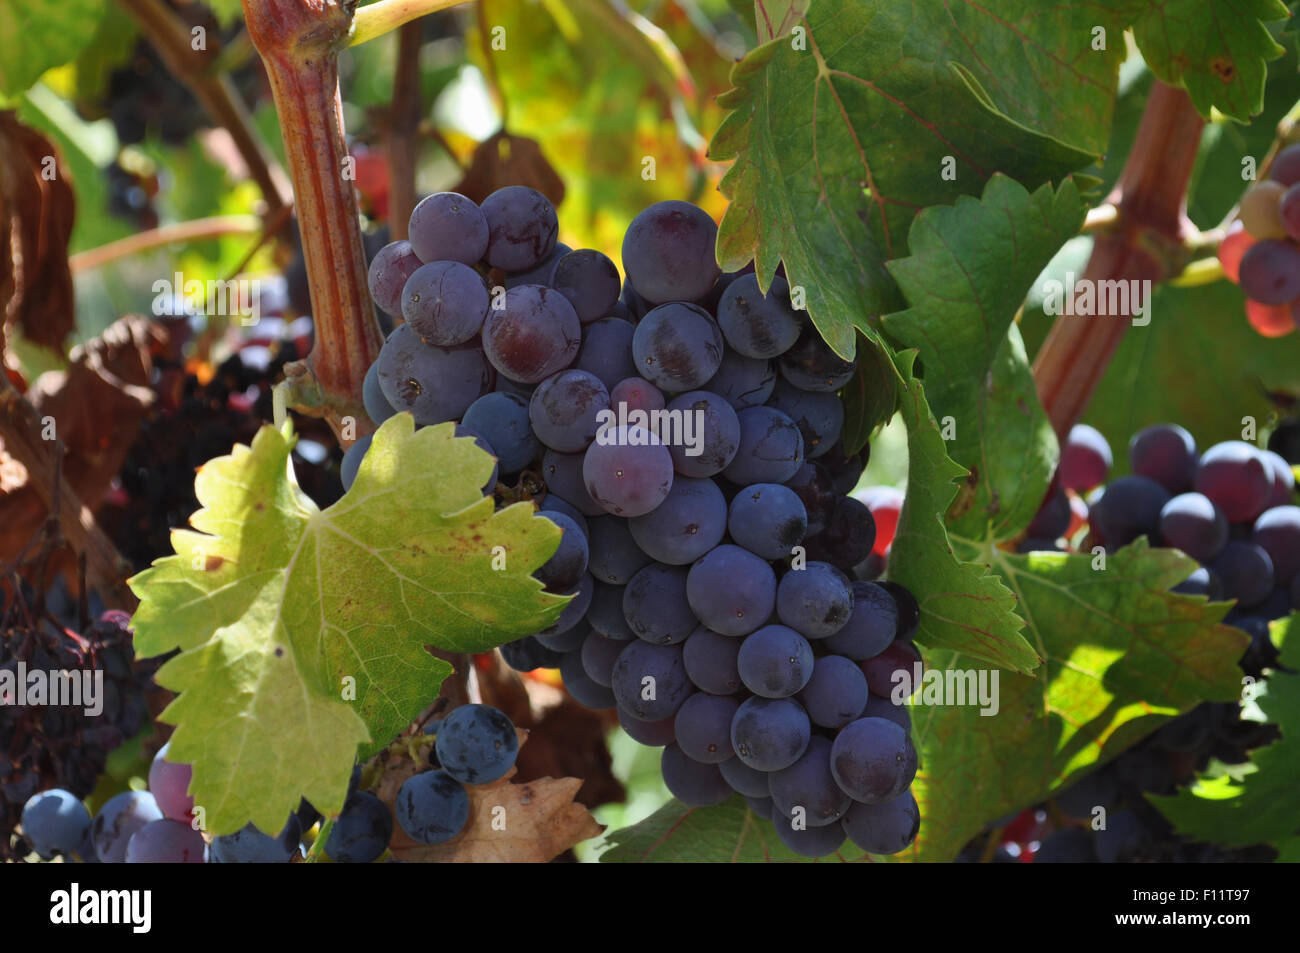 Bunch of grapes, in a vineyard in the Jalon Valley, Alicante Province, Spain - Stock Image